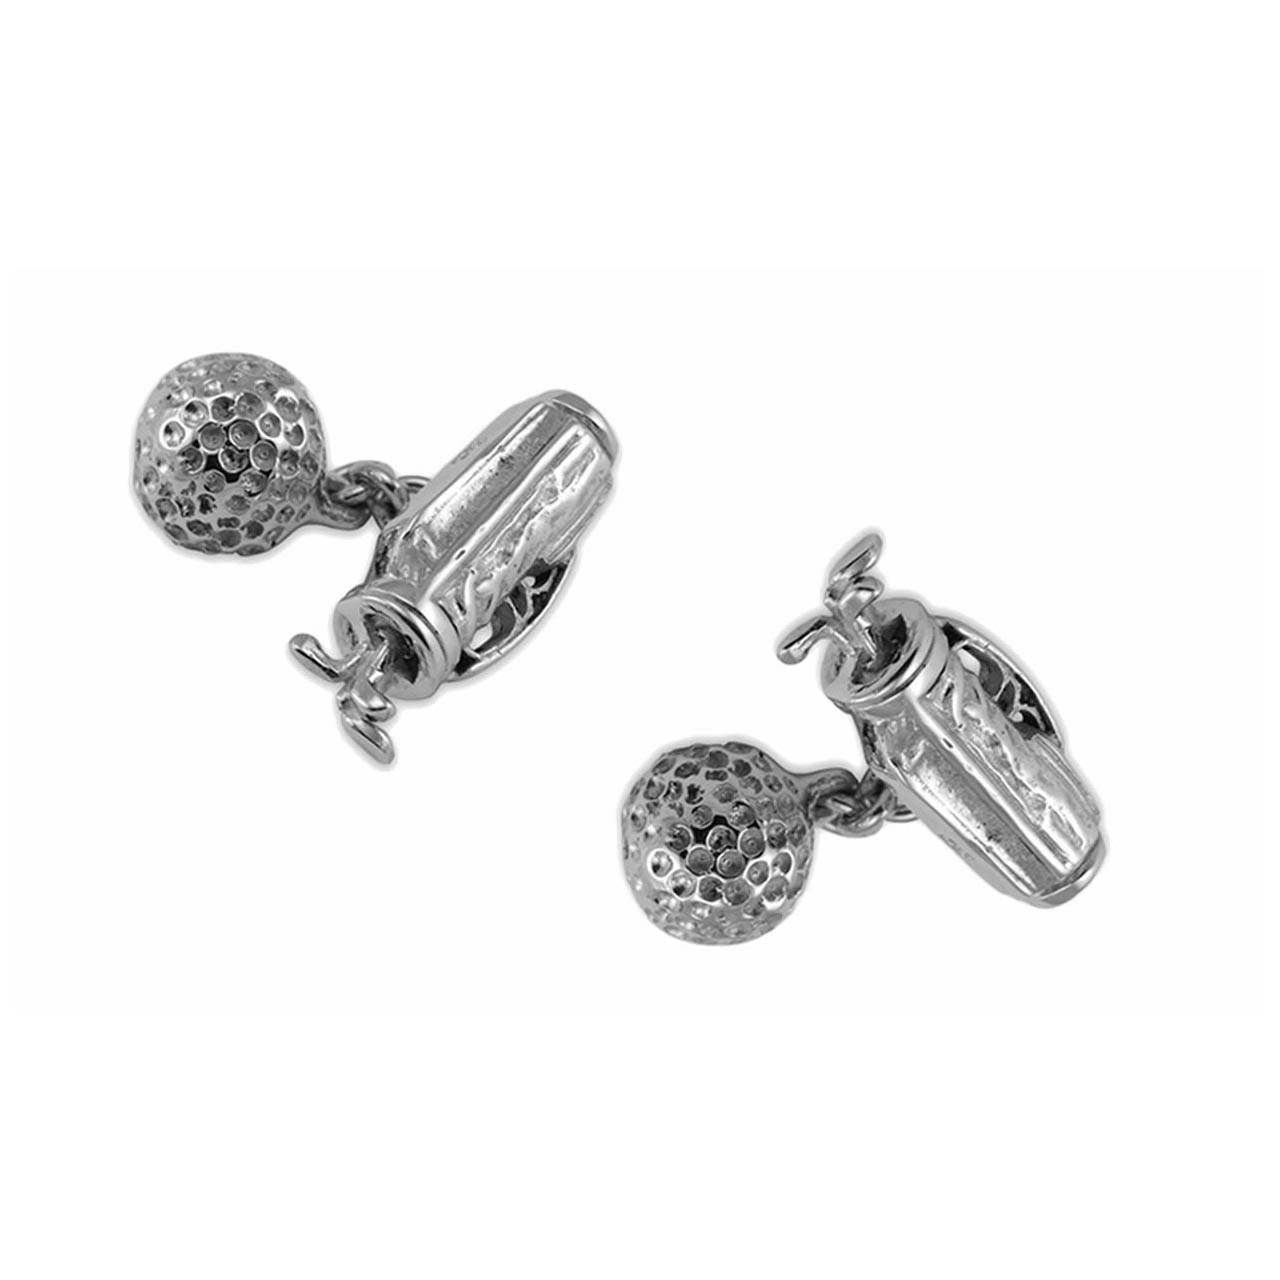 Sterling Silver Golf Bag & Ball Cufflinks